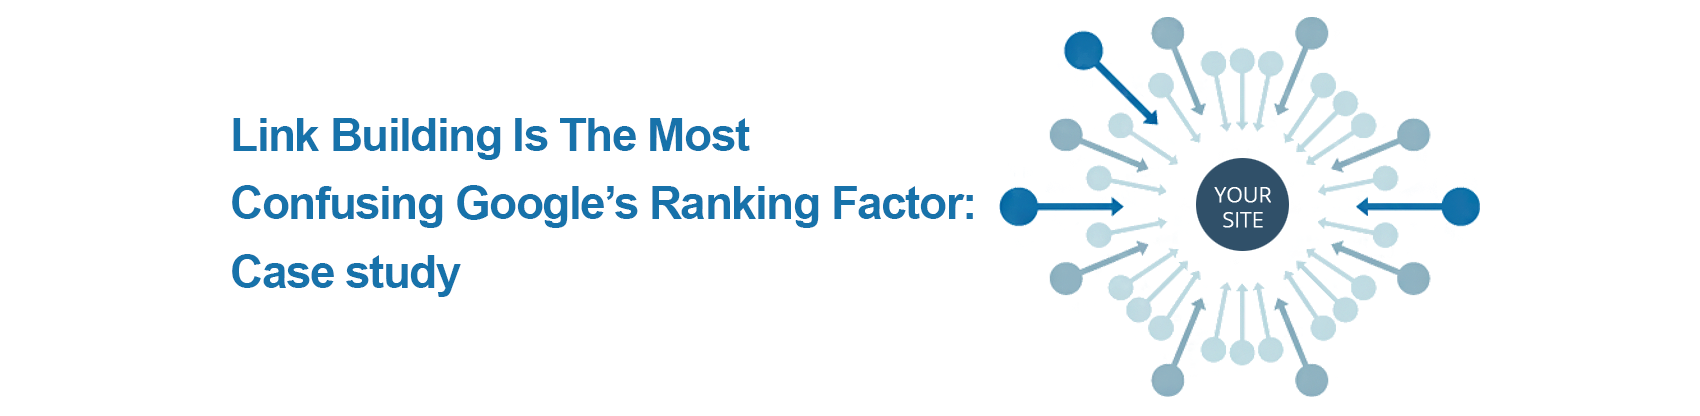 Link Building is the most confusing Google's ranking factor: Case study